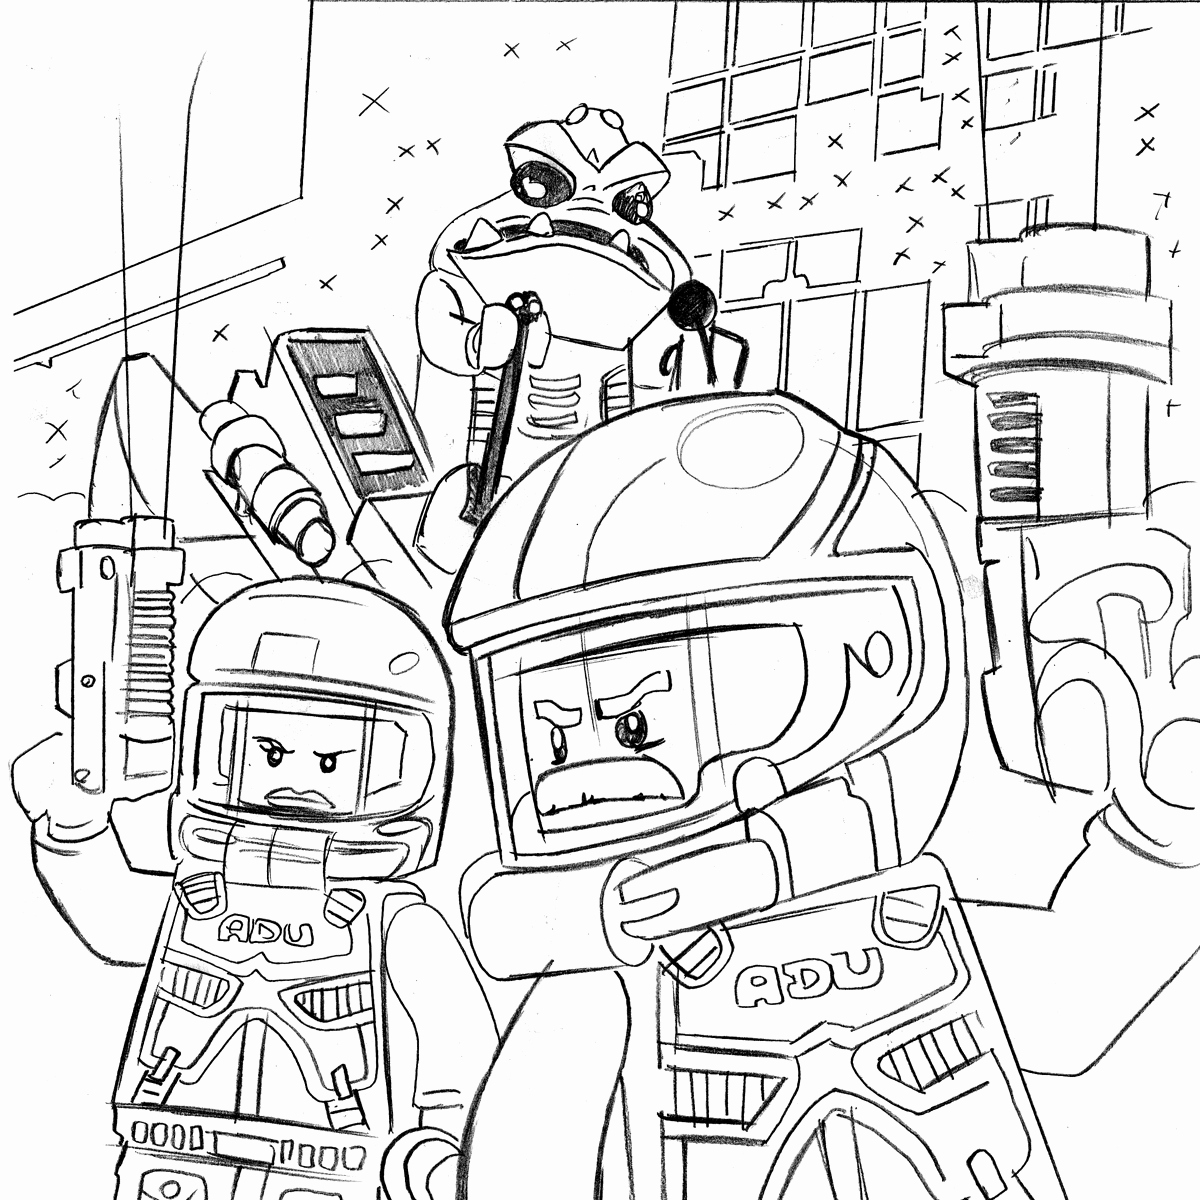 1200x1200 Dot To Dot Coloring Pages From Lego Site Lego Lego Police